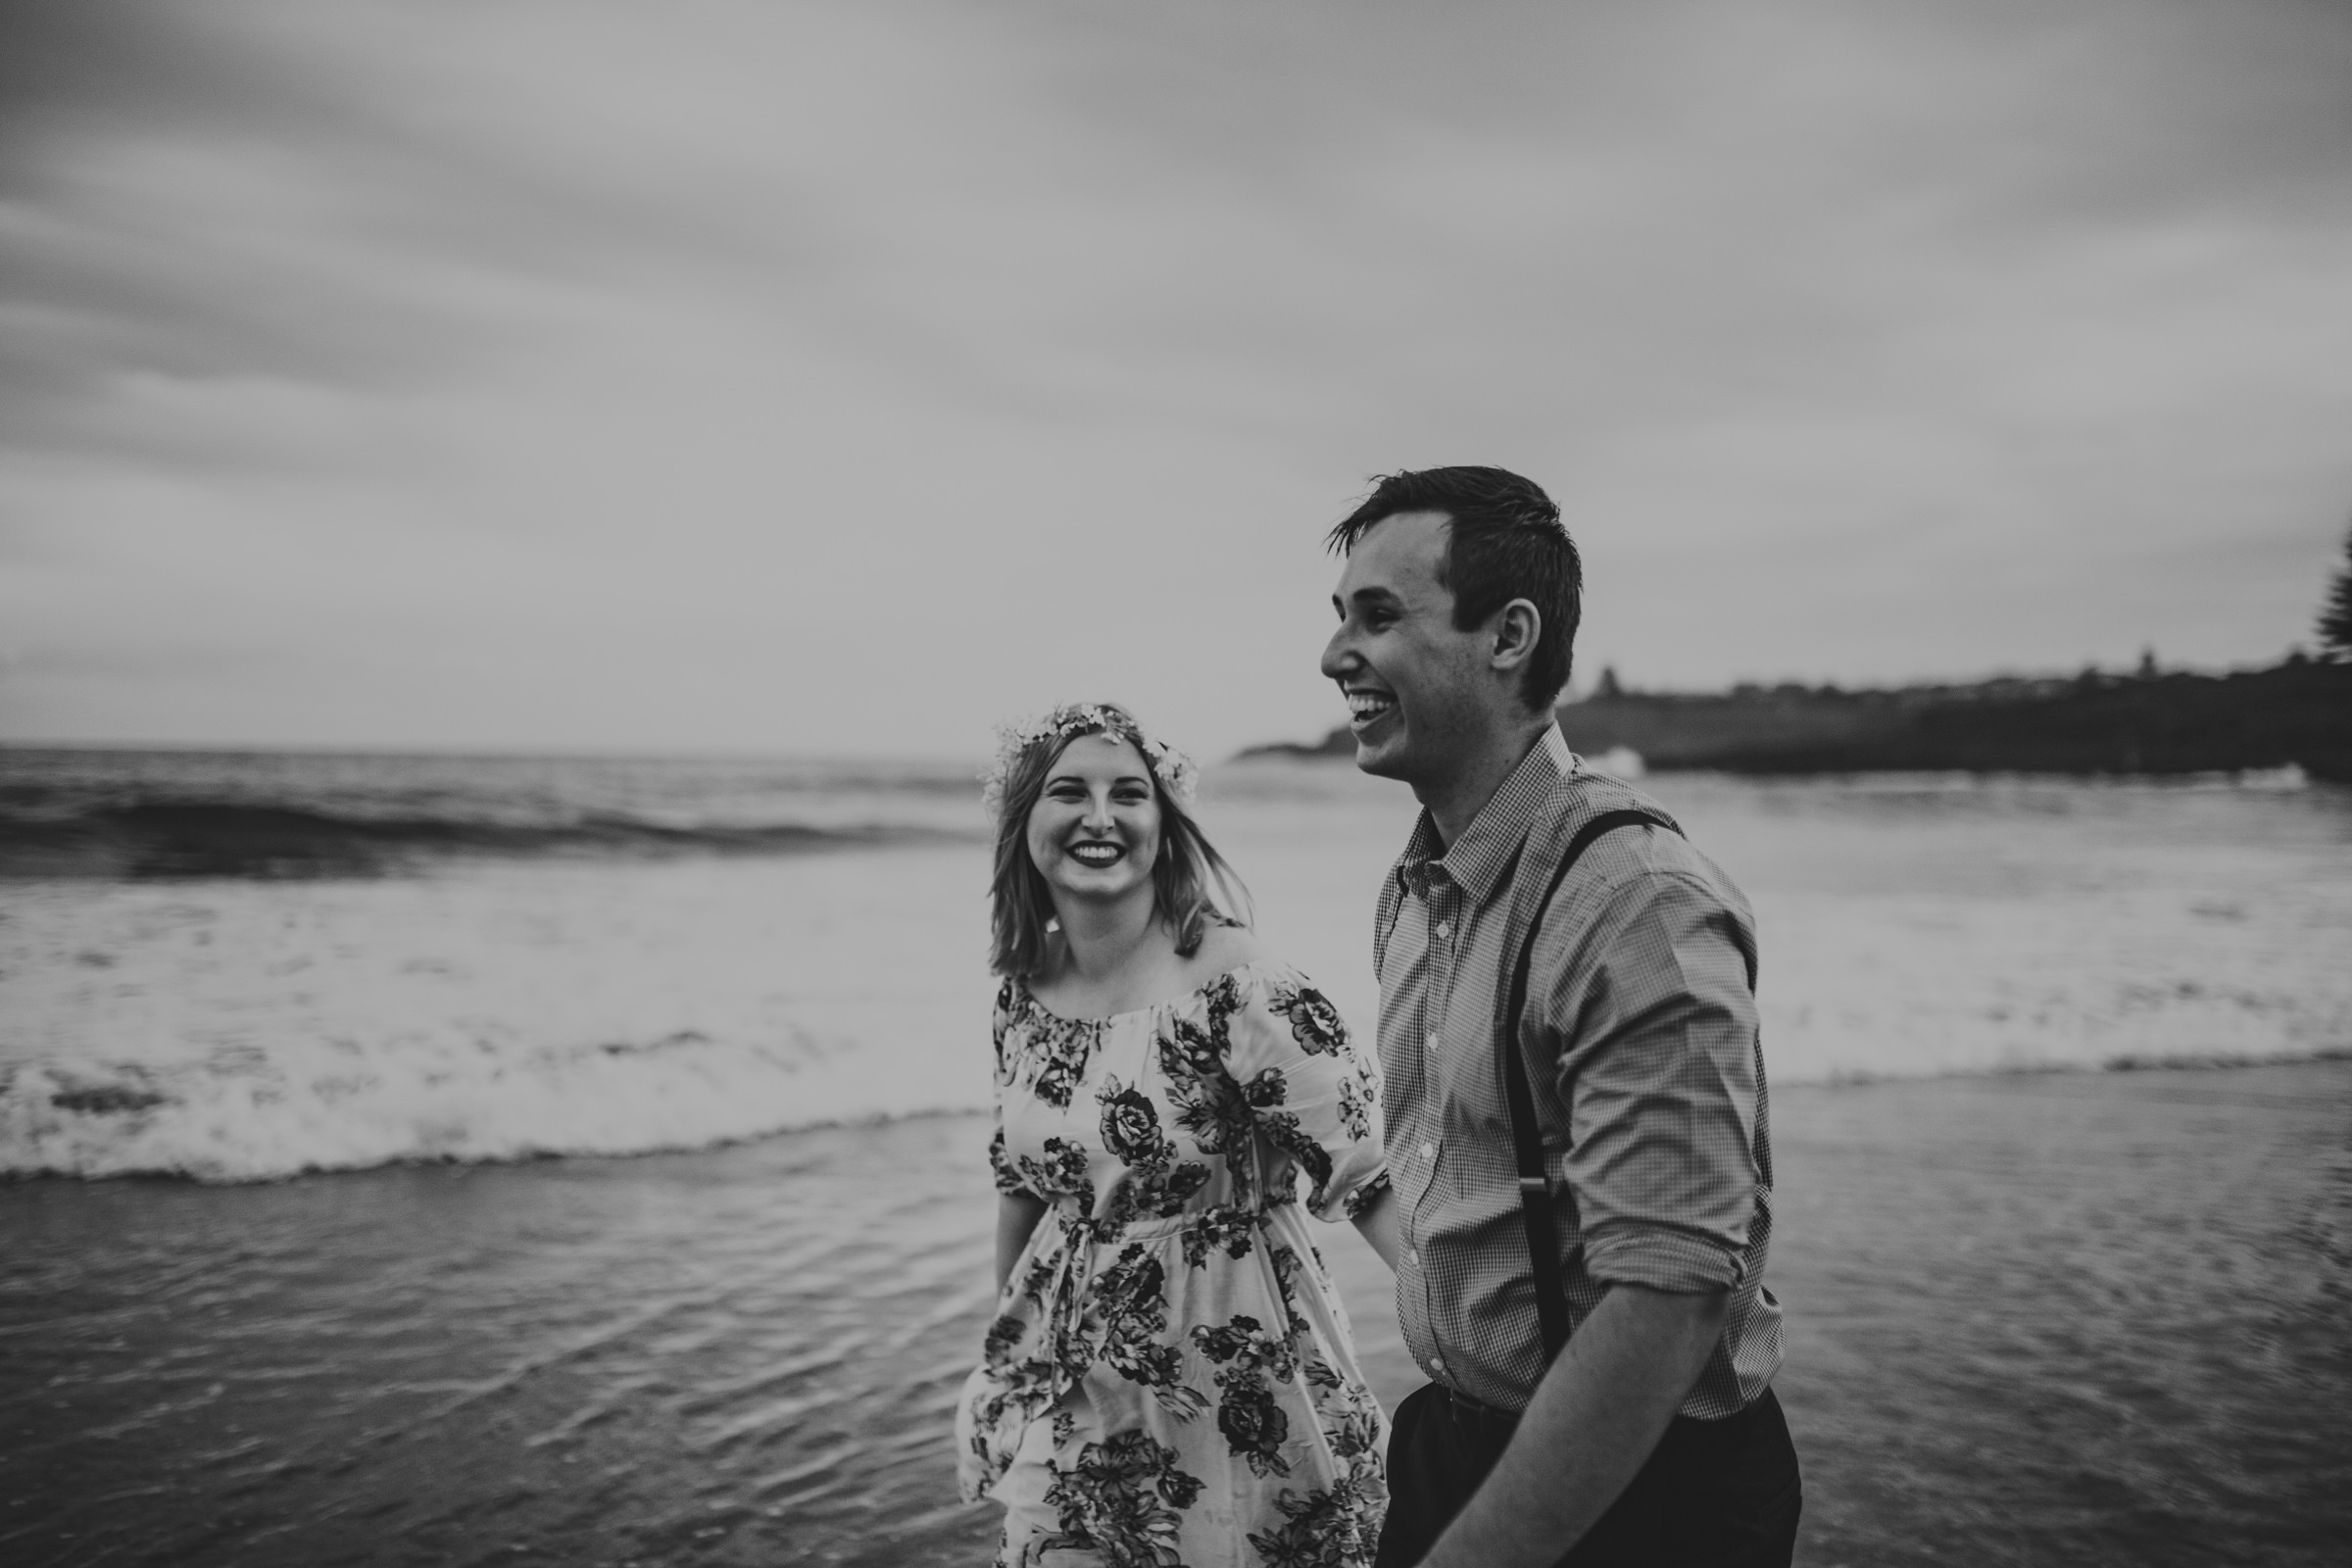 Ebony+Aj+Engagement+Kiama+Beach-19.jpg